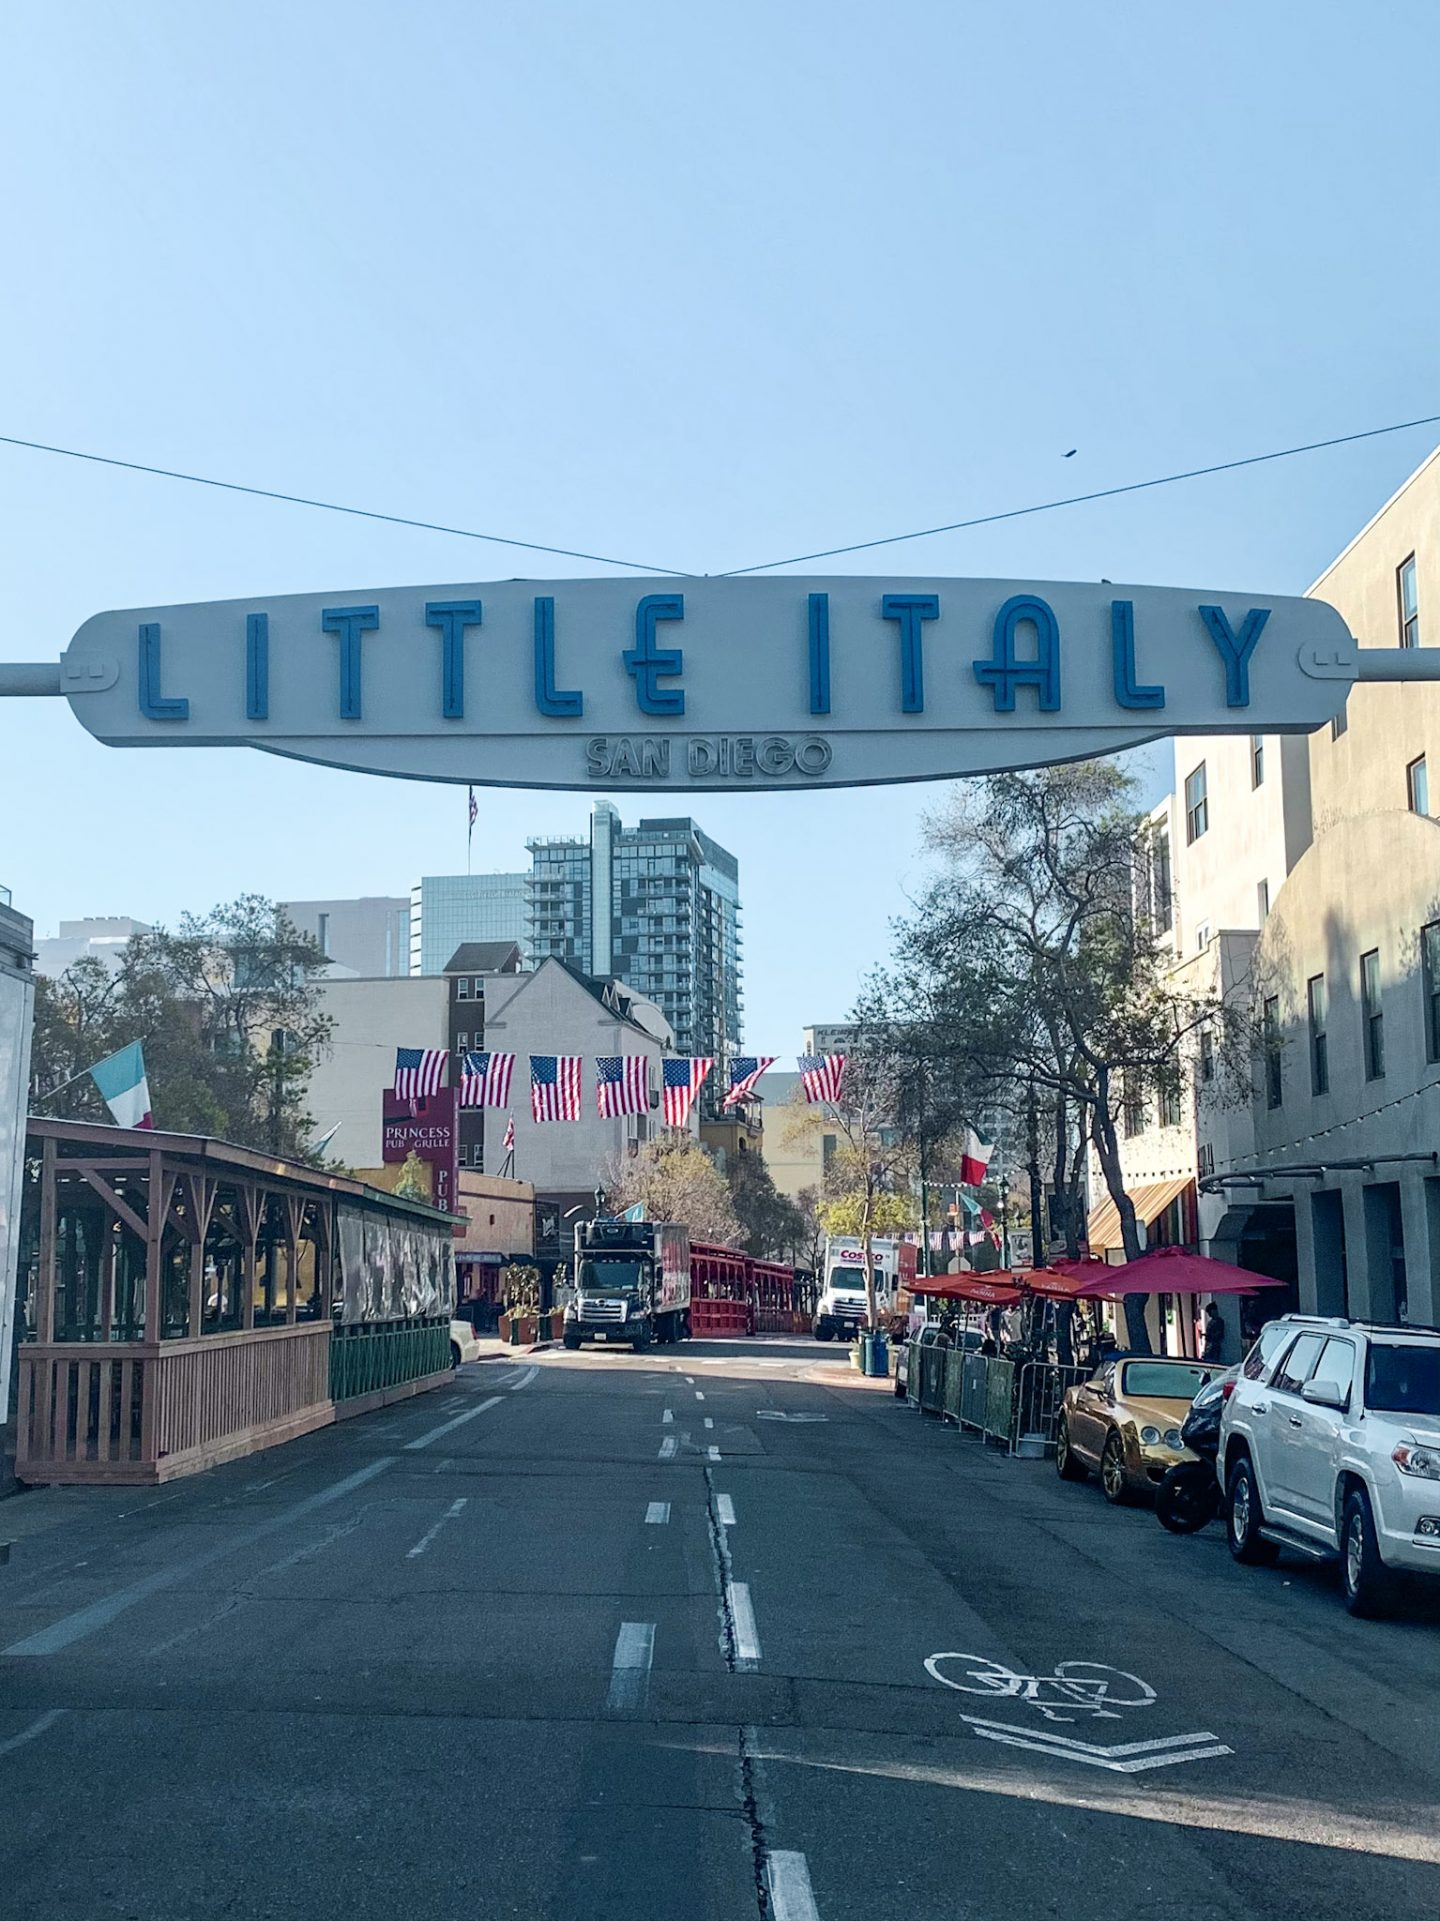 The little italy street sign in san diego